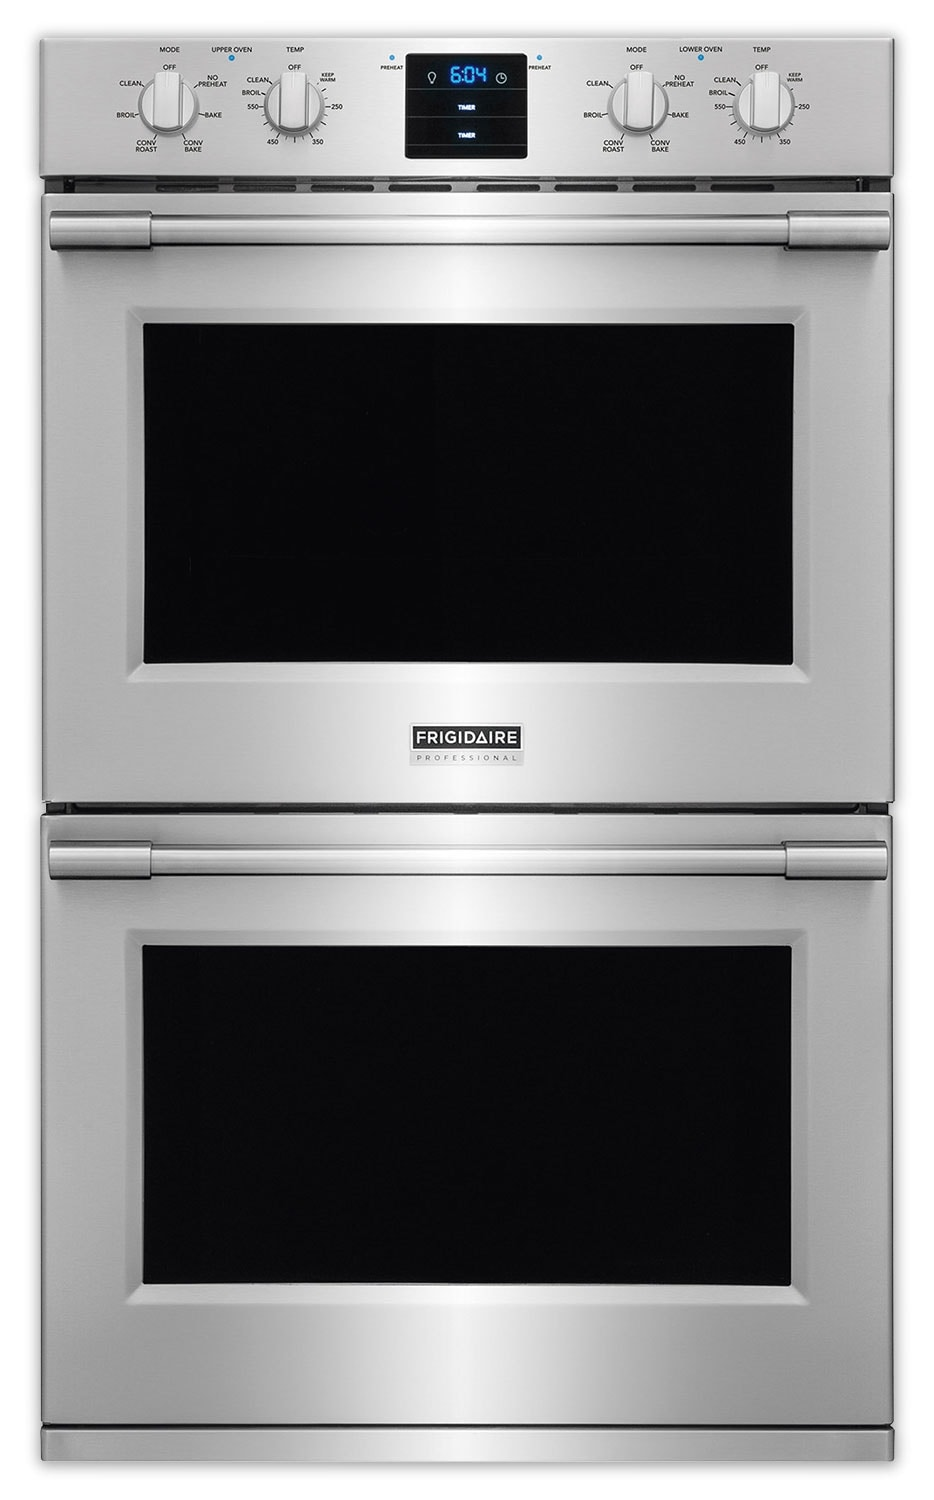 Cooking Products - Frigidaire Professional Stainless Steel Convection Double Wall Oven 10.2 Cu. Ft.) - FPET3077RF